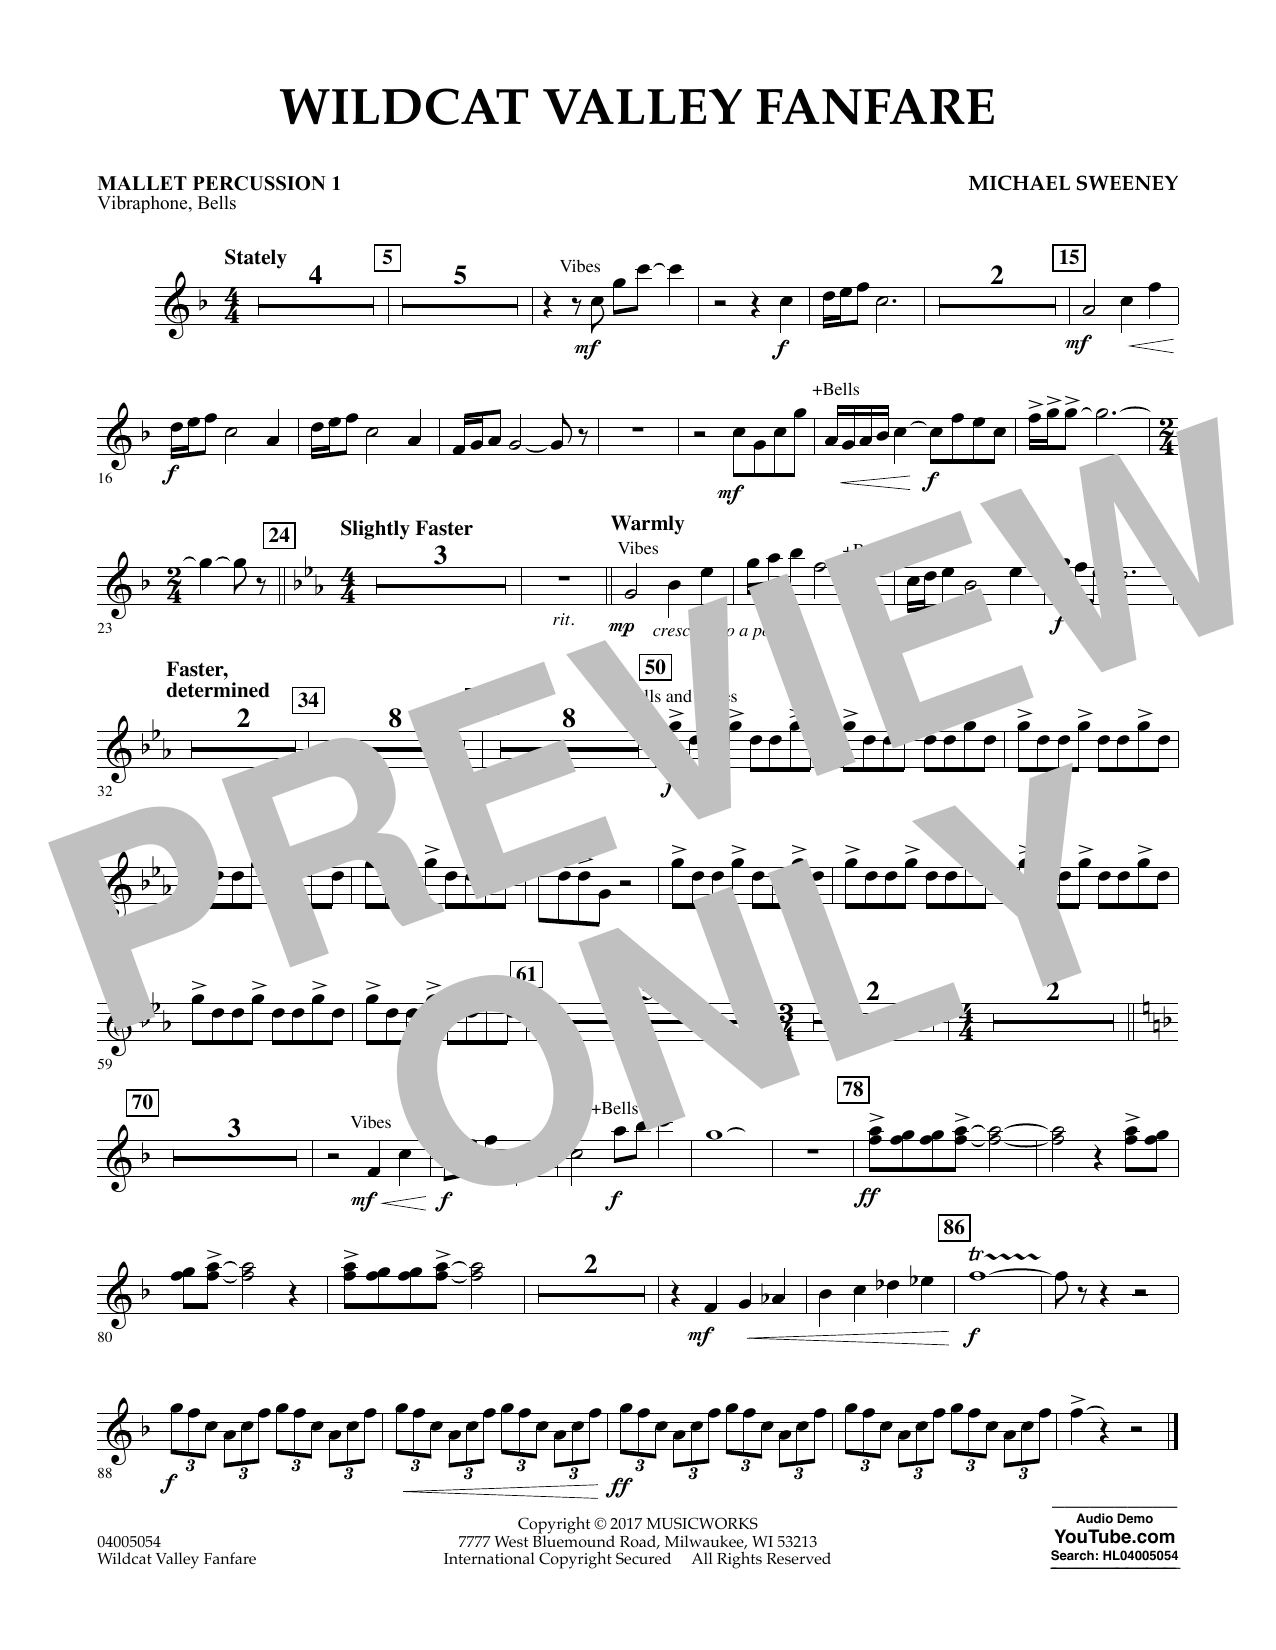 Wildcat Valley Fanfare - Mallet Percussion 1 Digitale Noten